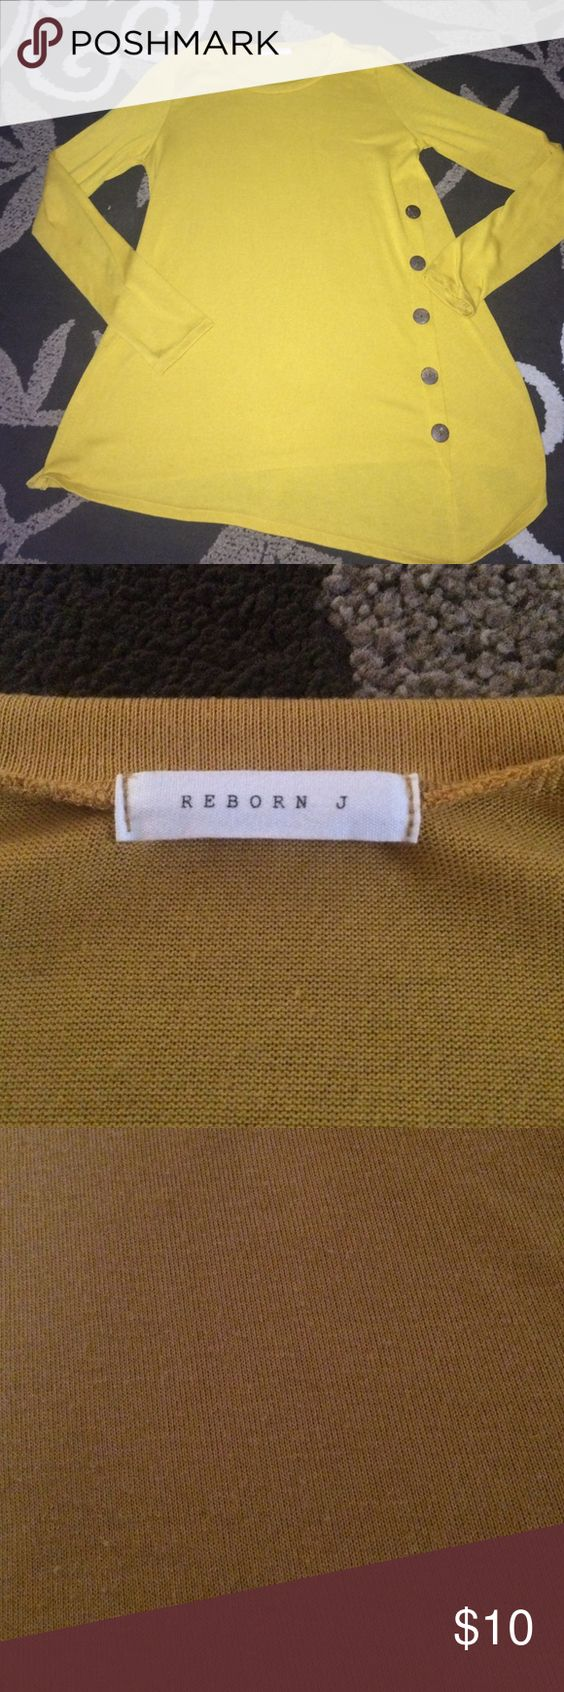 Mustard color tunic with buttons size L Gorgeous mustard colored tunic, brand is Reborn J and is a size L. Literally only worn once and looks great with leggings! Some very minor pilling, see pic 3, not really even noticeable, otherwise fanatic condition! Smoke free home, make me an offer and don't forget to bundle! Reborn J Tops Tunics